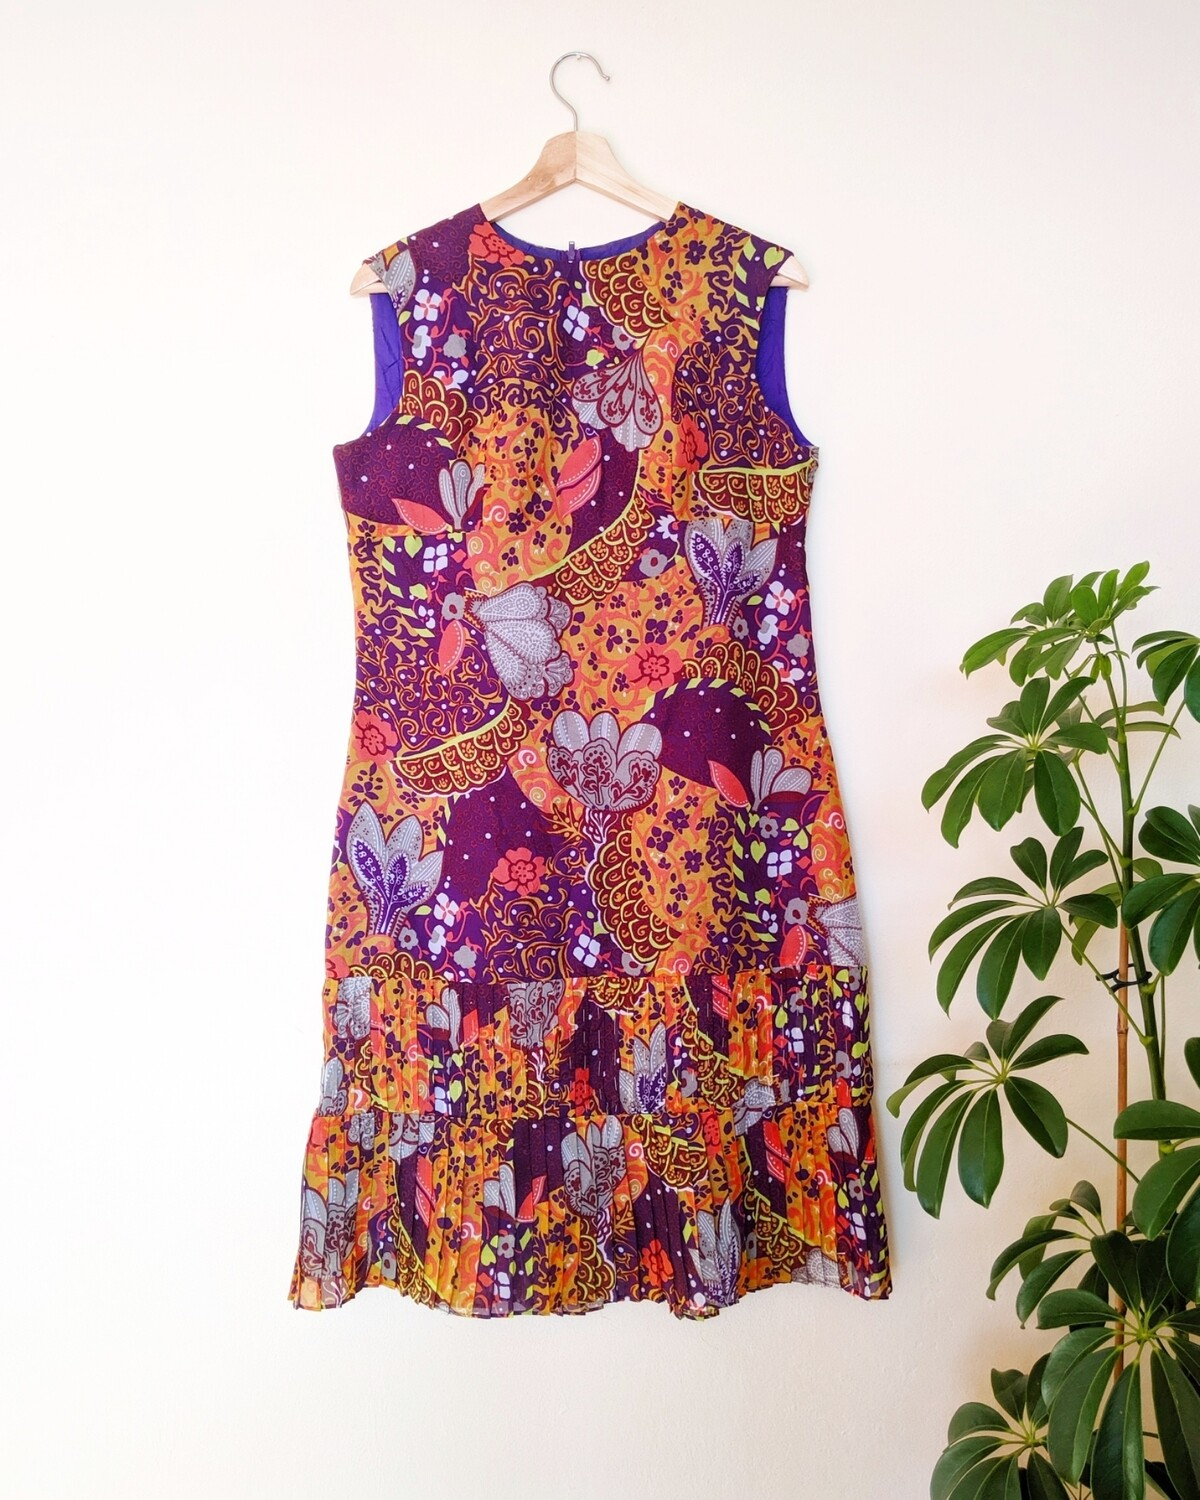 GROOVE IS IN THE HEART PSYCHEDELIC 60S DRESS